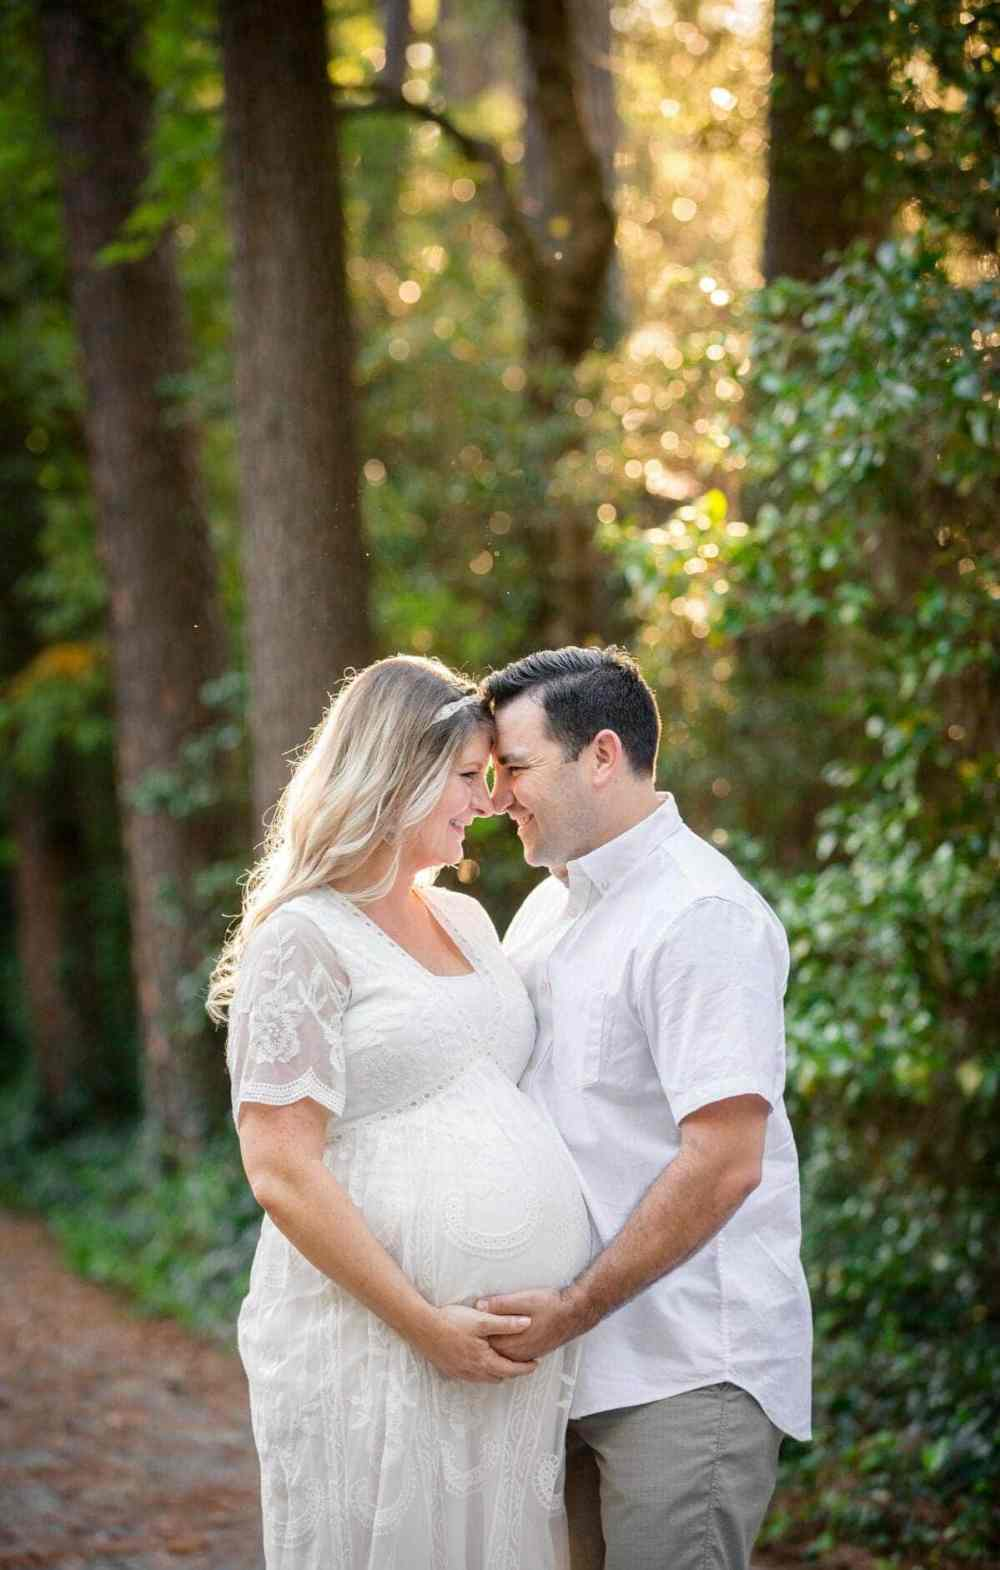 Family maternity photo session - Alisha Rudd Photography - bumpdate 34 weeks